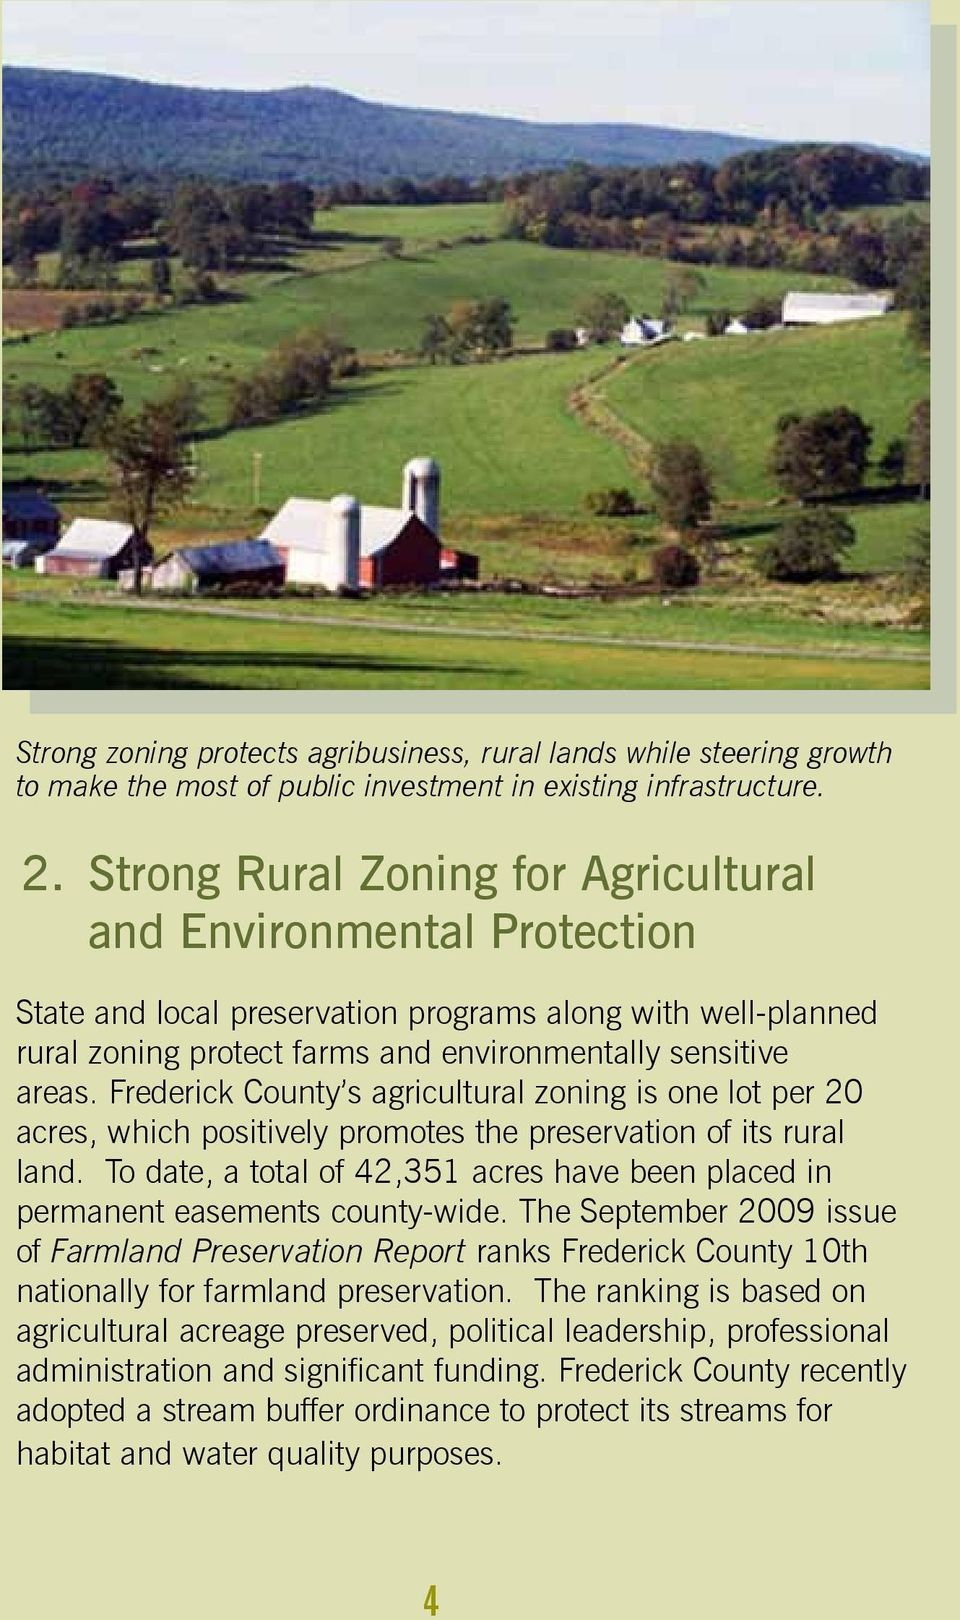 Frederick County s agricultural zoning is one lot per 20 acres, which positively promotes the preservation of its rural land.